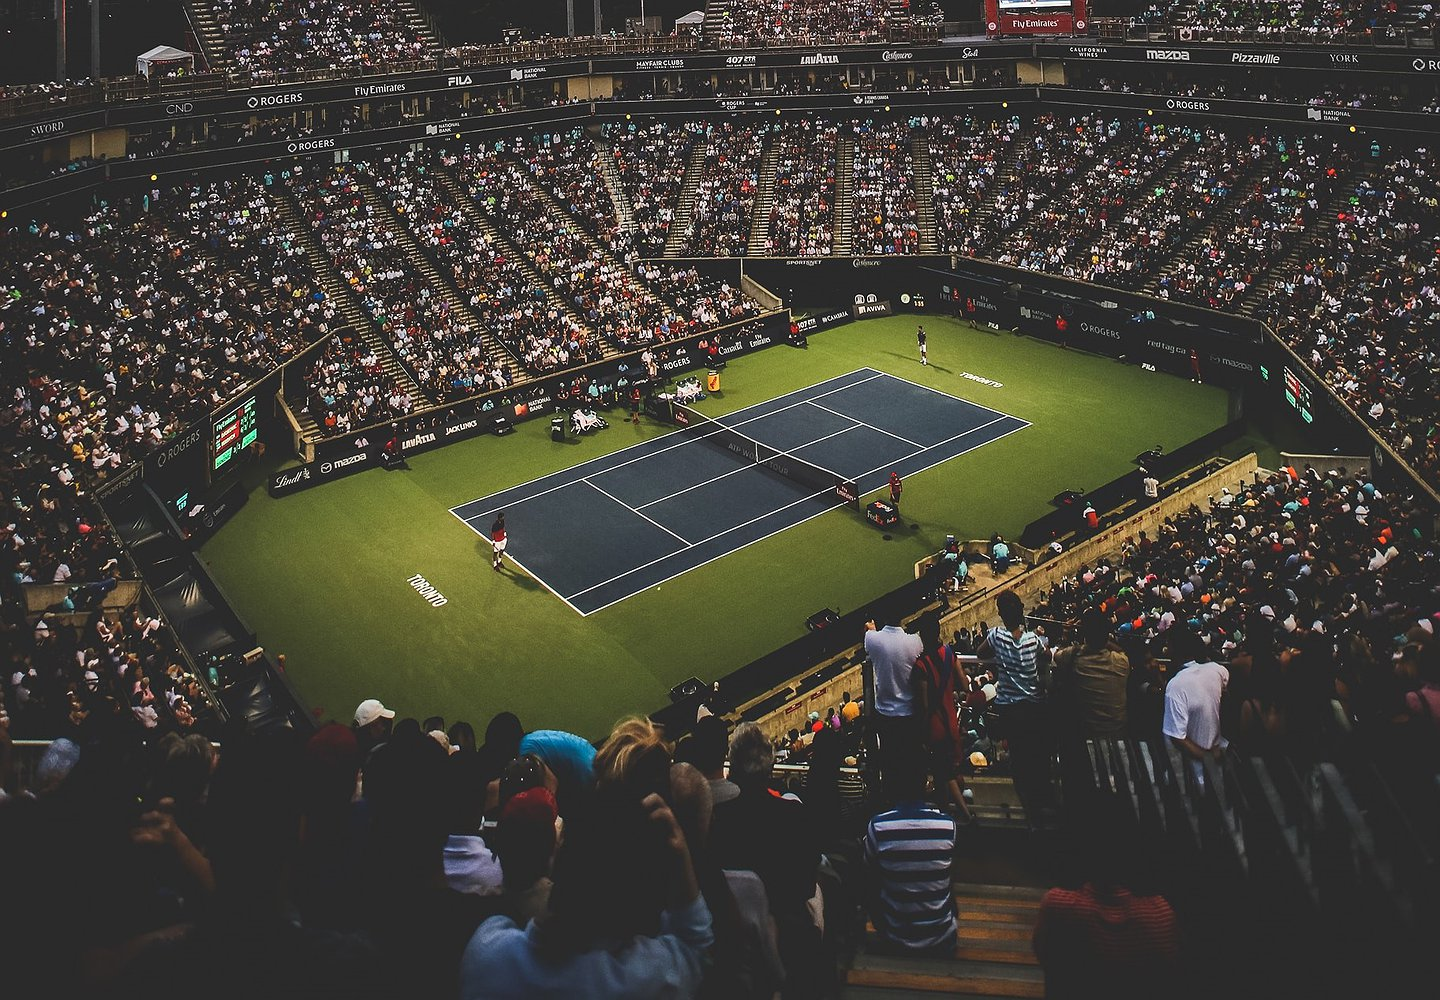 U.S. Open Gives Marketers a Hot Advertising Opportunity